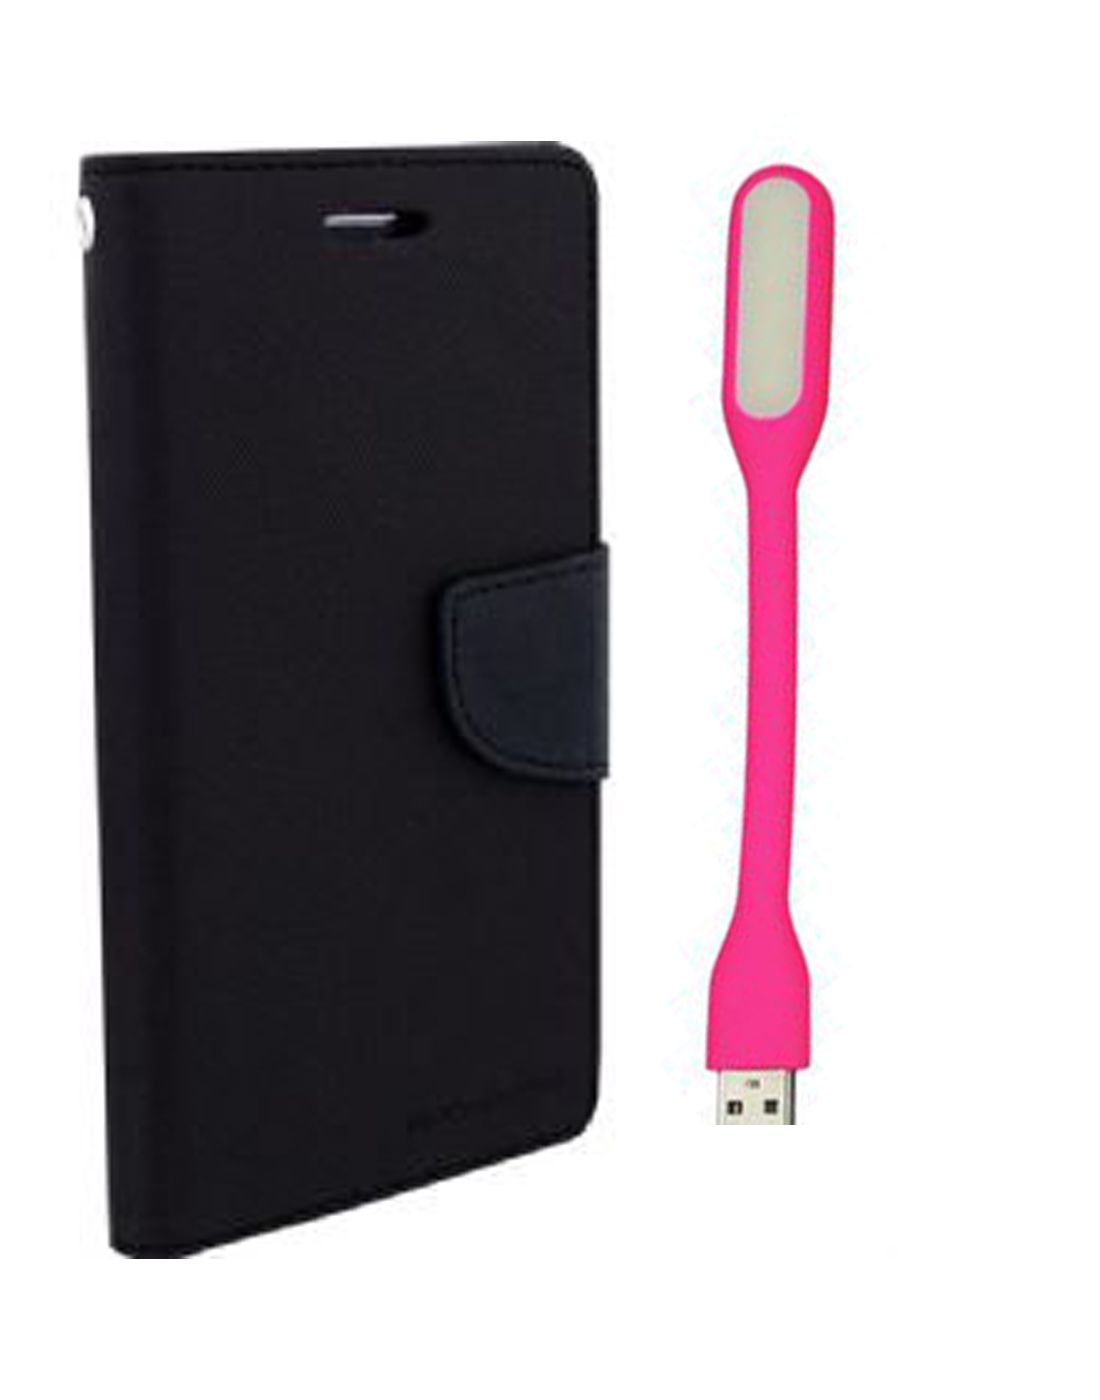 Wallet Flip Case Back Cover For HTC 516 -(Black) + Flexible Mini LED Stick Lamp Light By Style Crome